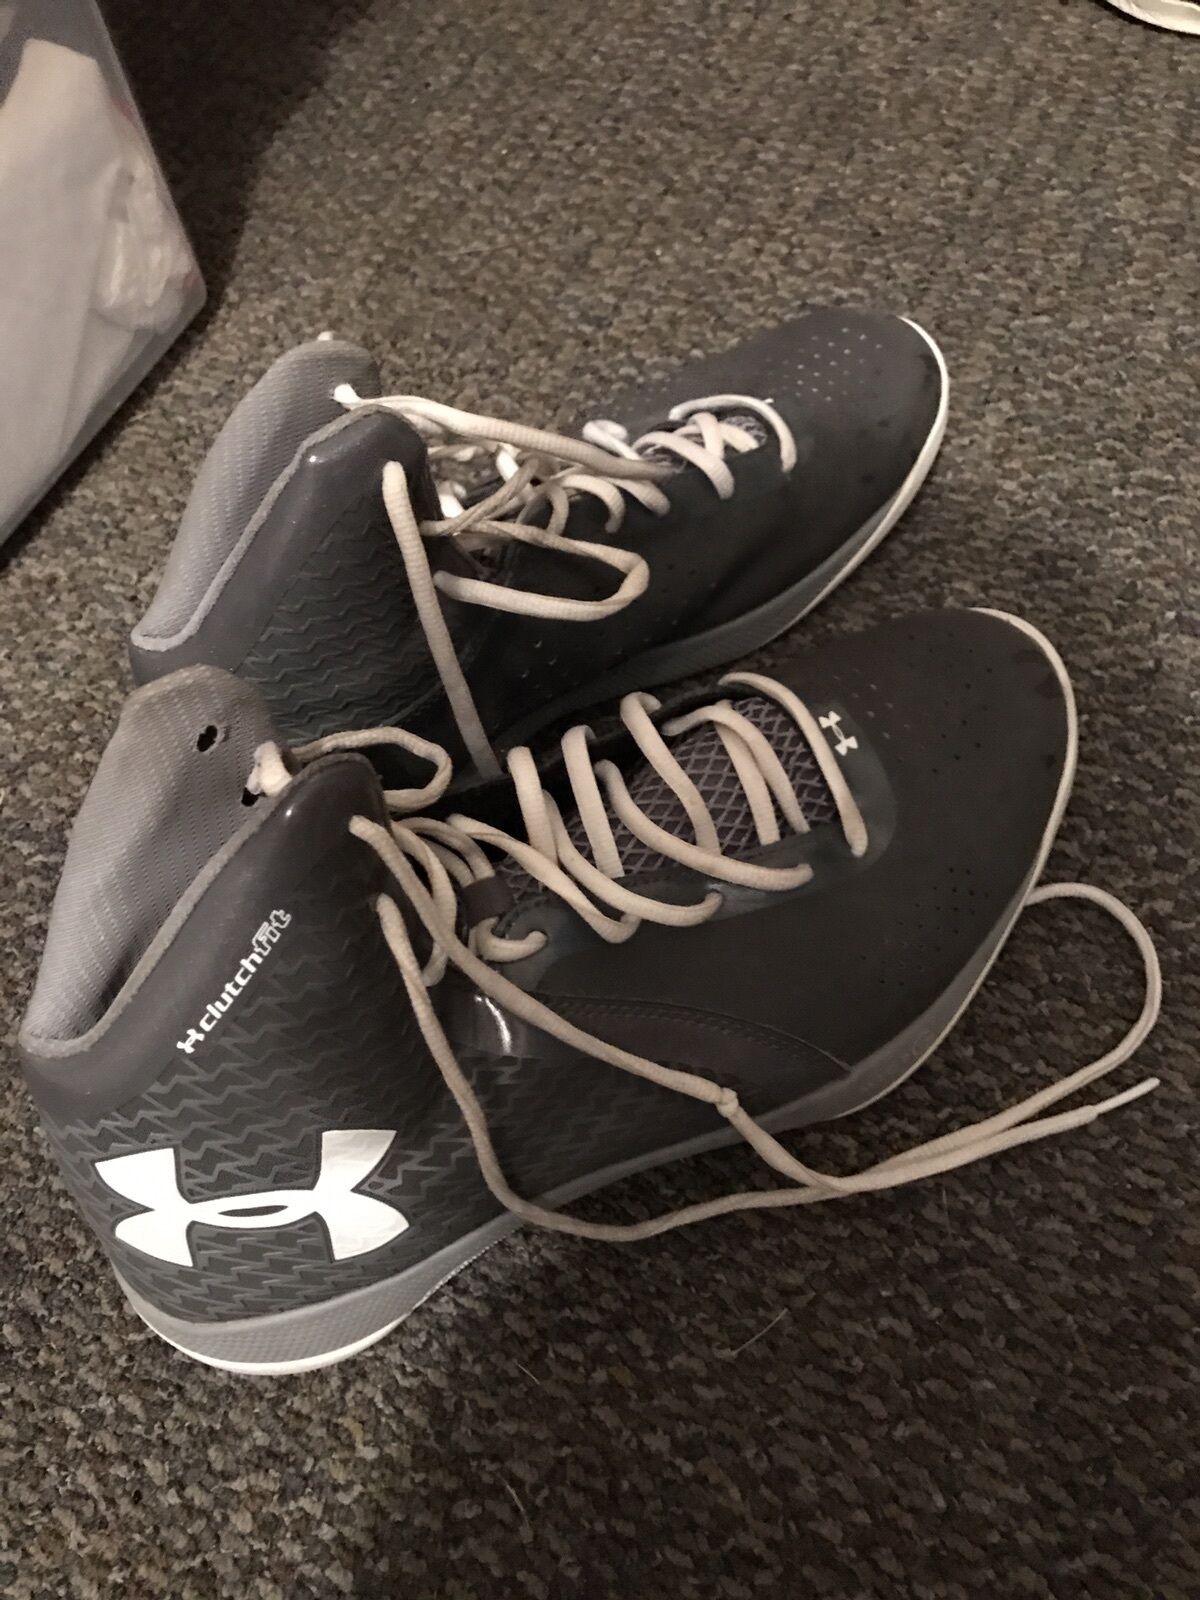 Under Armour Basketball Shoes Size 12